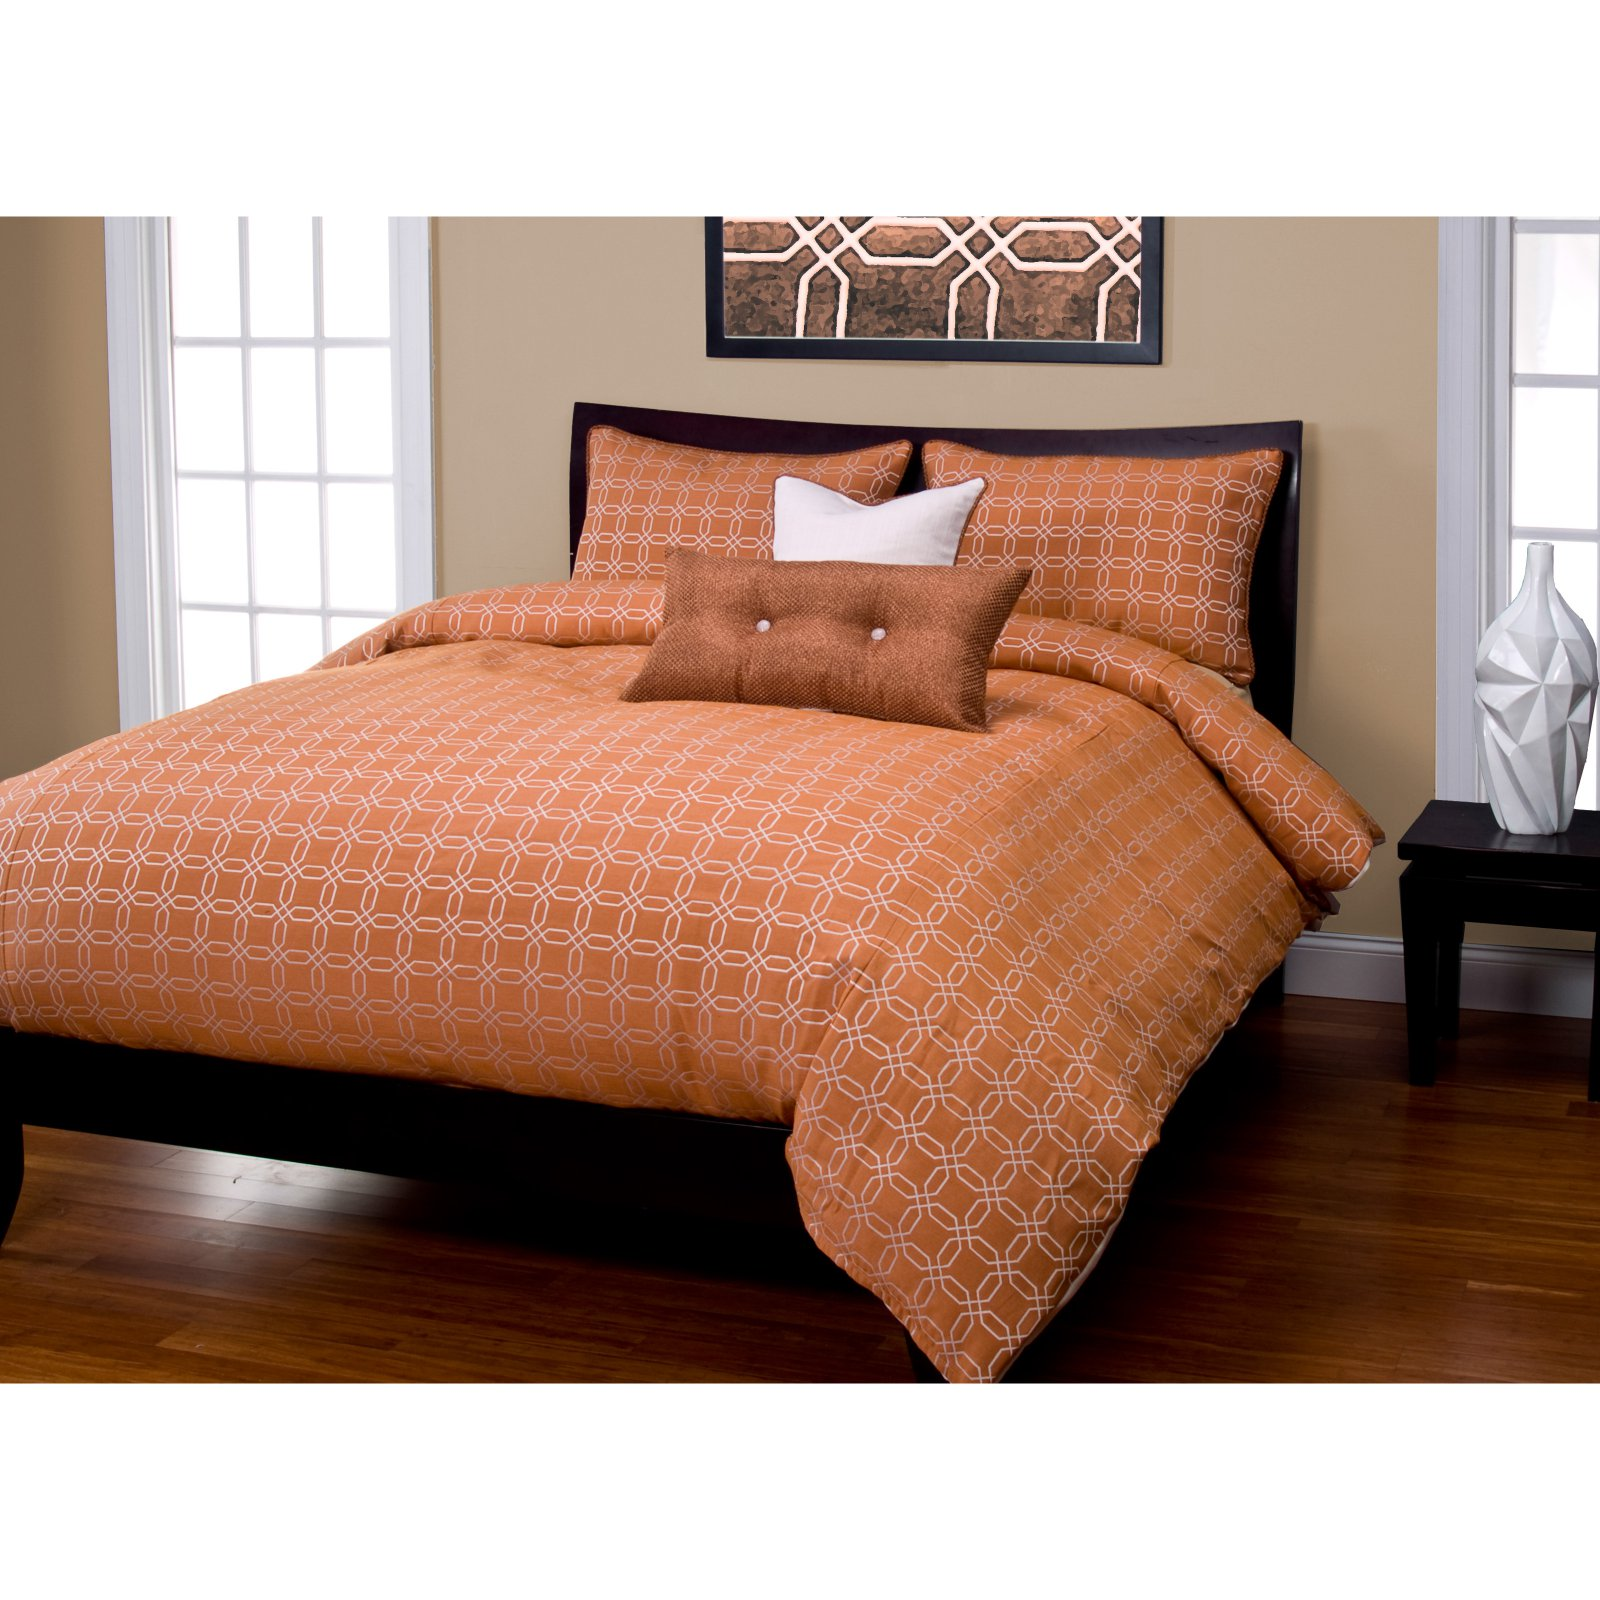 SIS Covers Mandarin Duvet Set